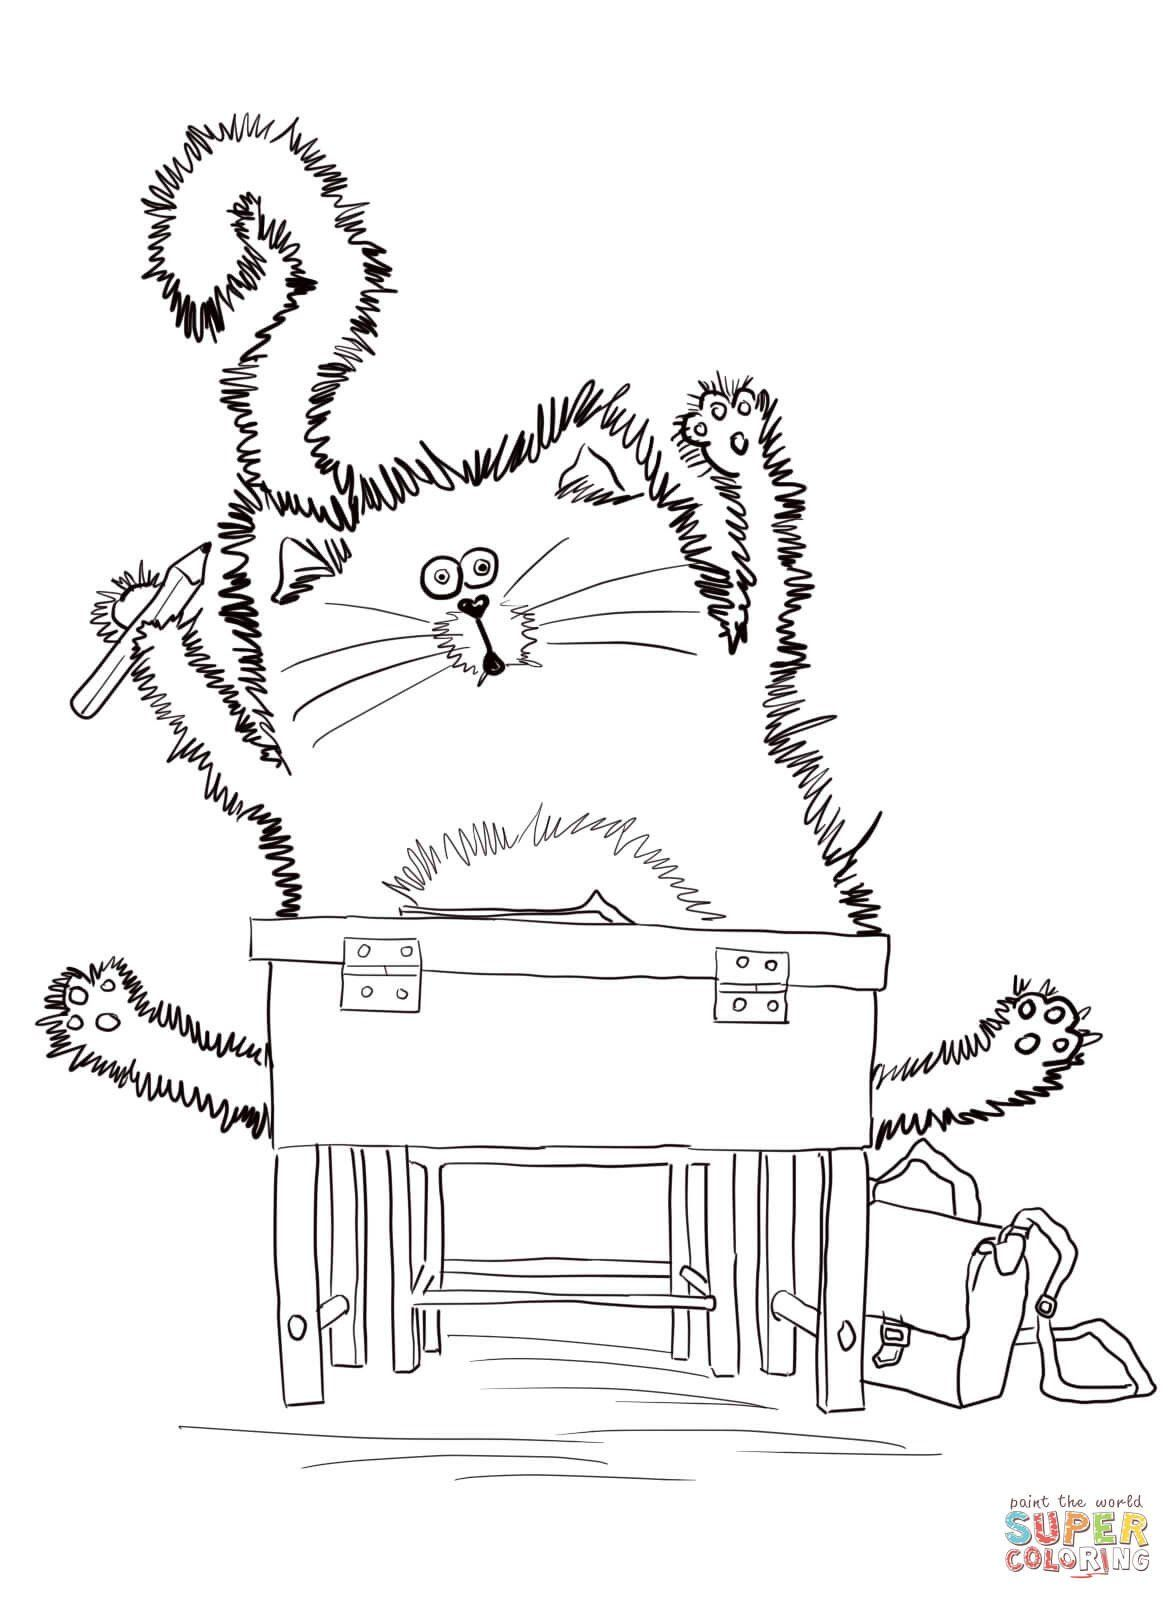 Pete the Cat Coloring Page Best Of Splat the Cat Coloring